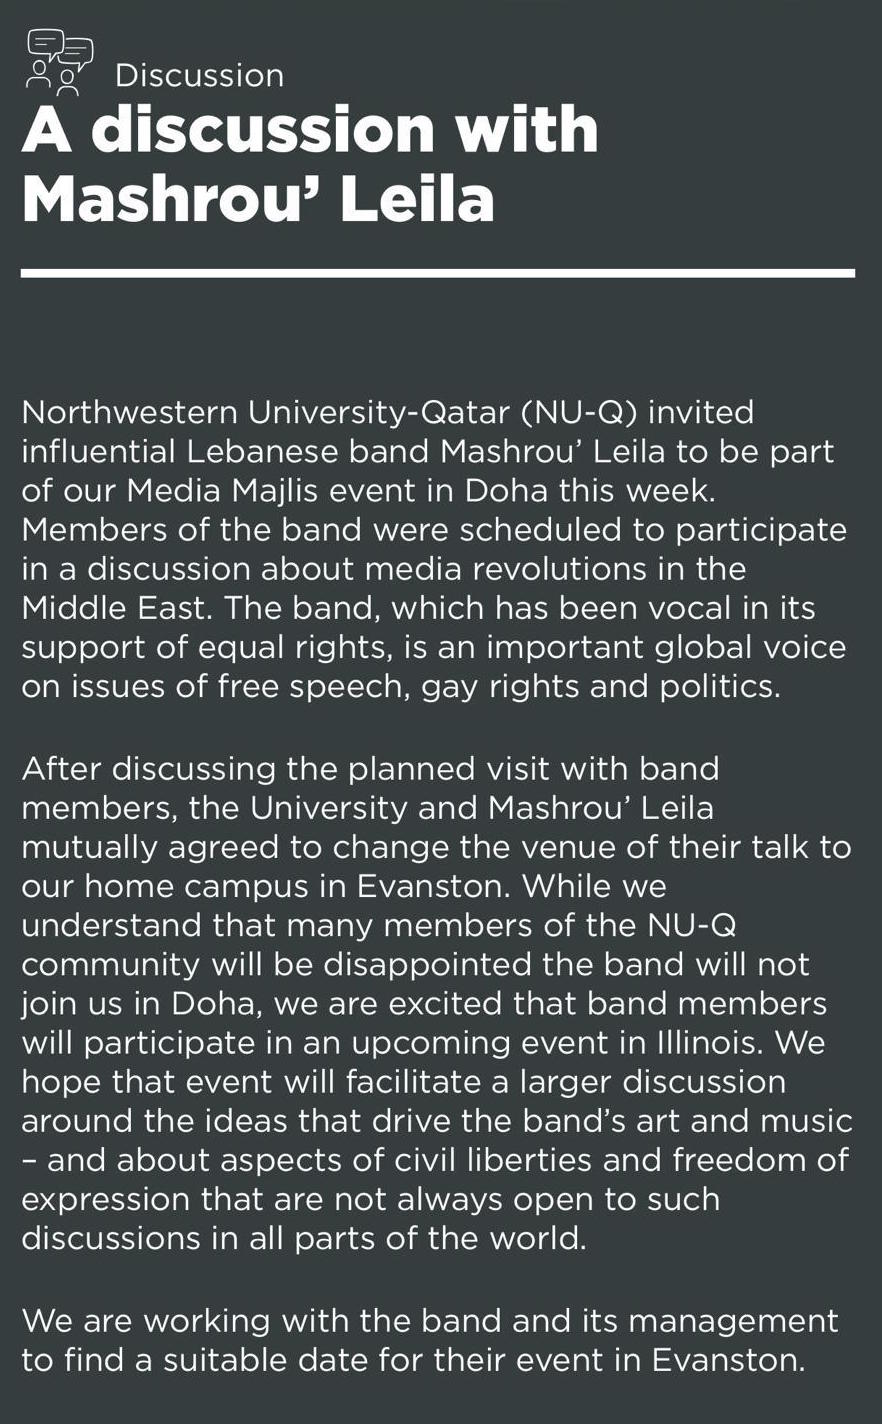 A screenshot of the Media Majlis' official statement on relocating the Mashrou' Leila event to the Evanston campus.